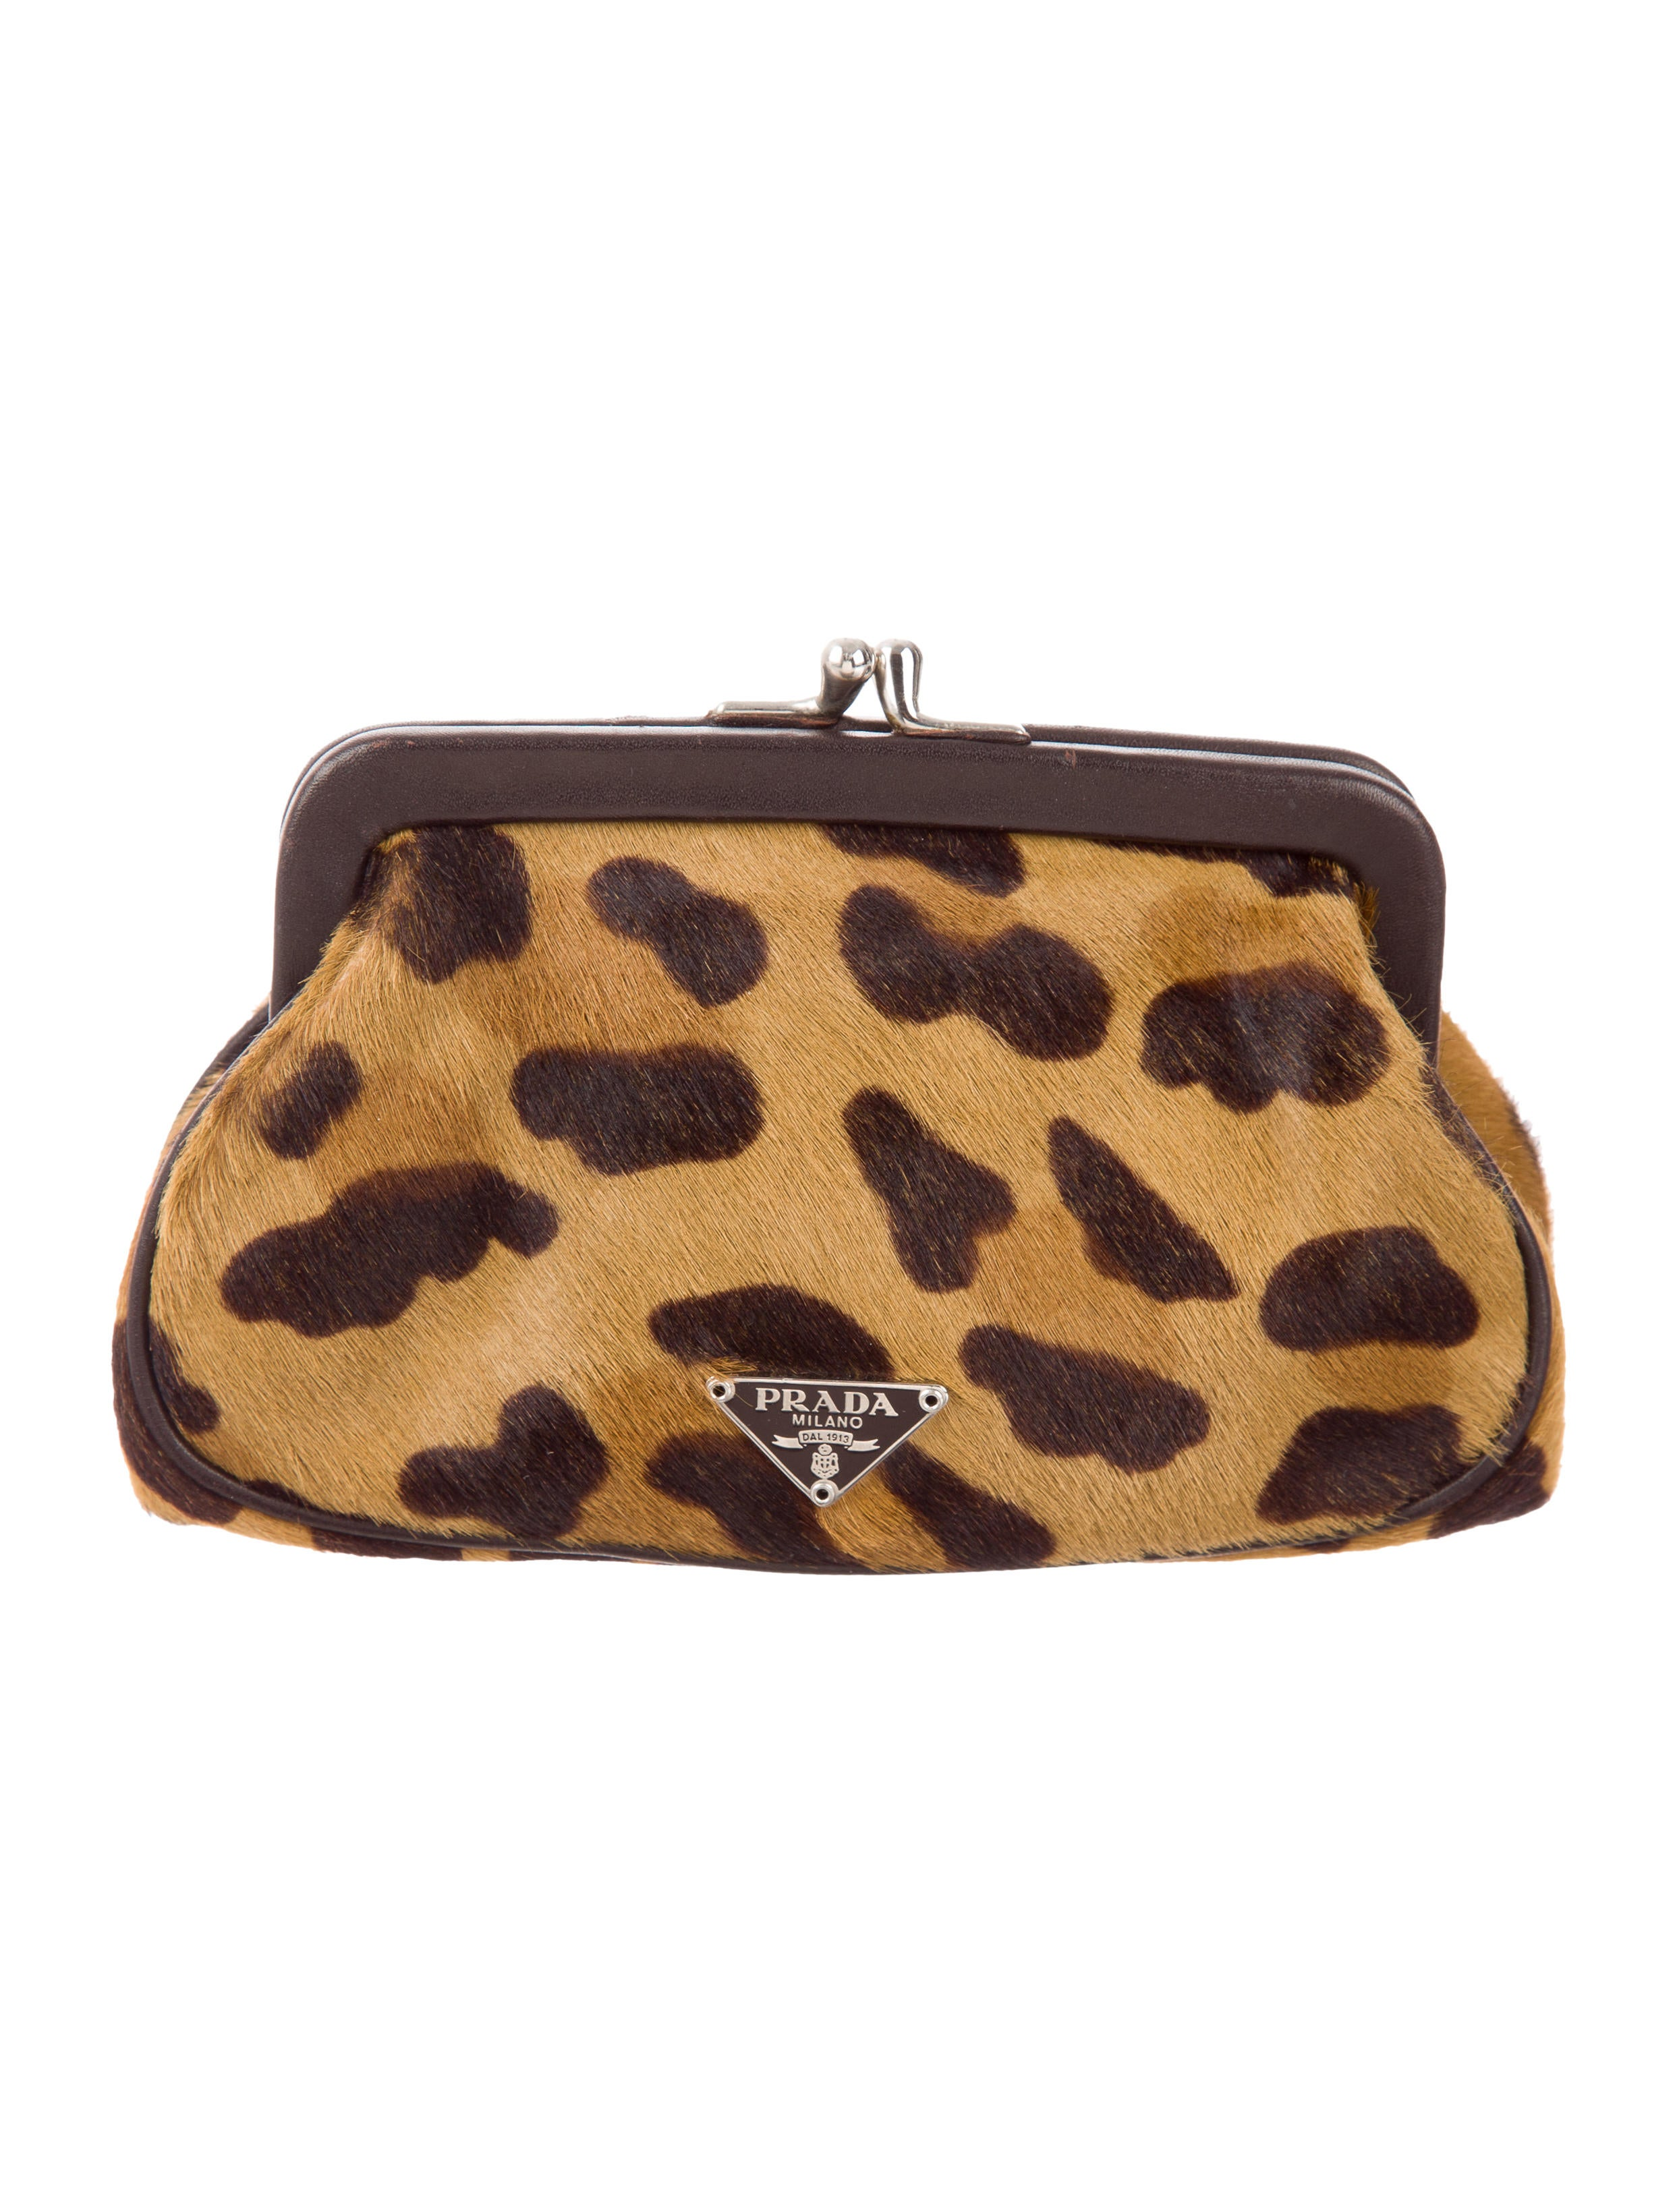 817a99dc6f47 Prada Leopard Print Coin Purse - Accessories - PRA164339 | The RealReal